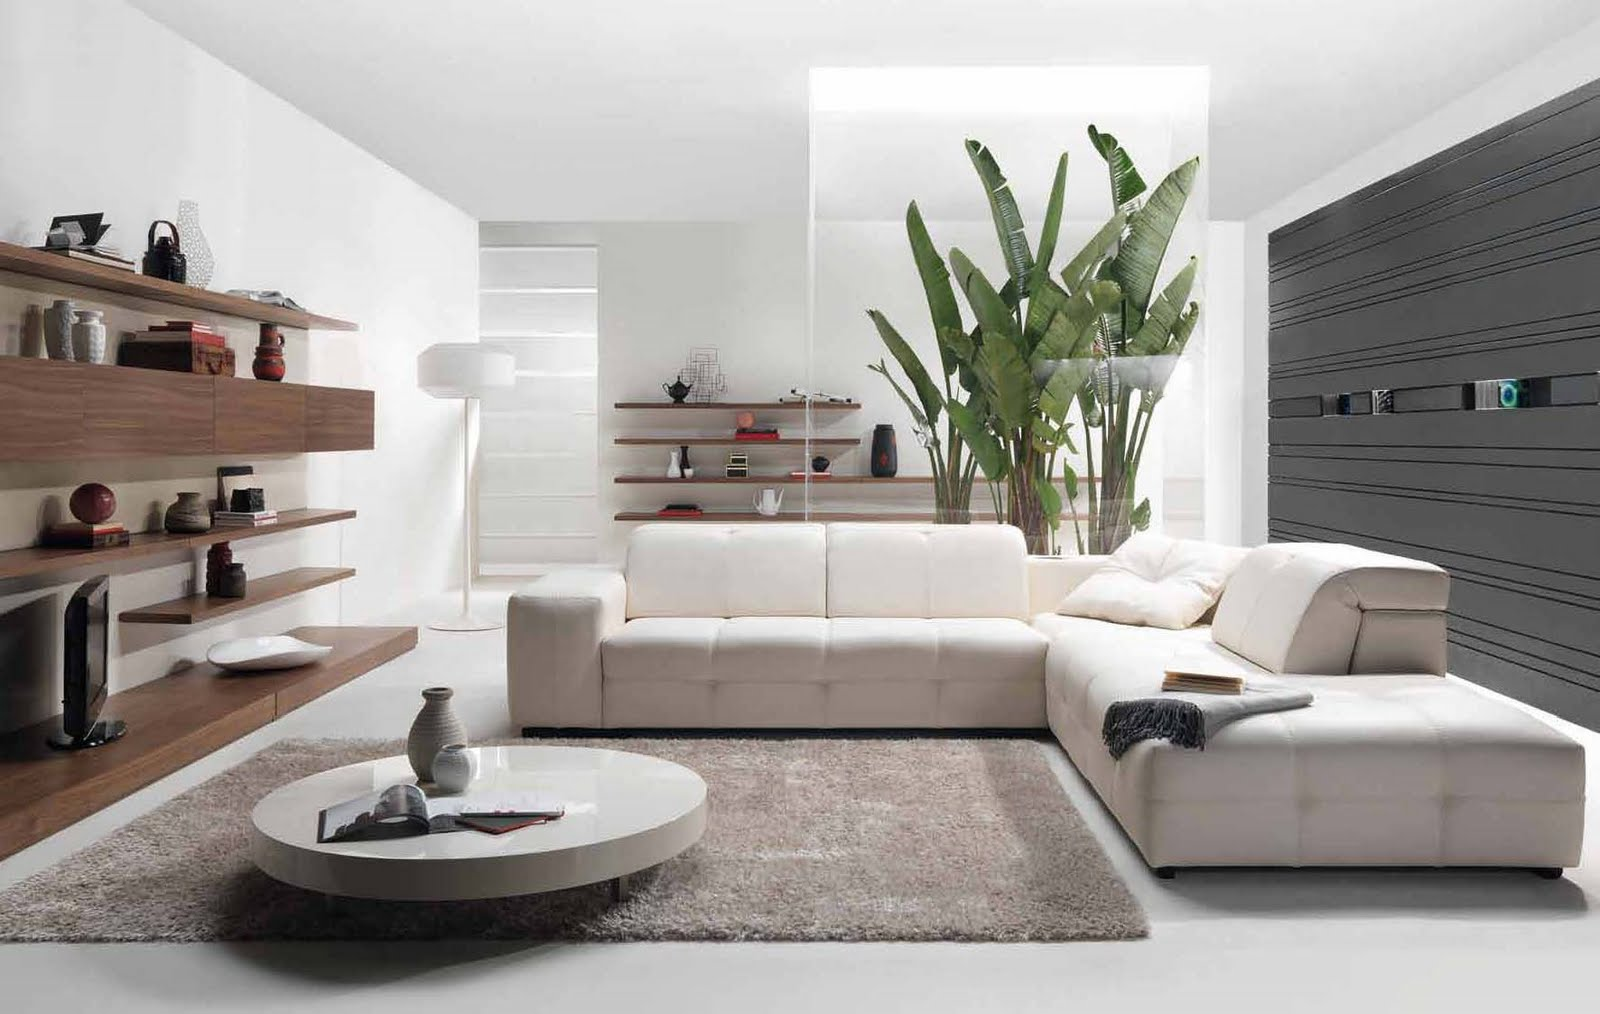 Future house design modern living room interior design for Interior sitting room designs